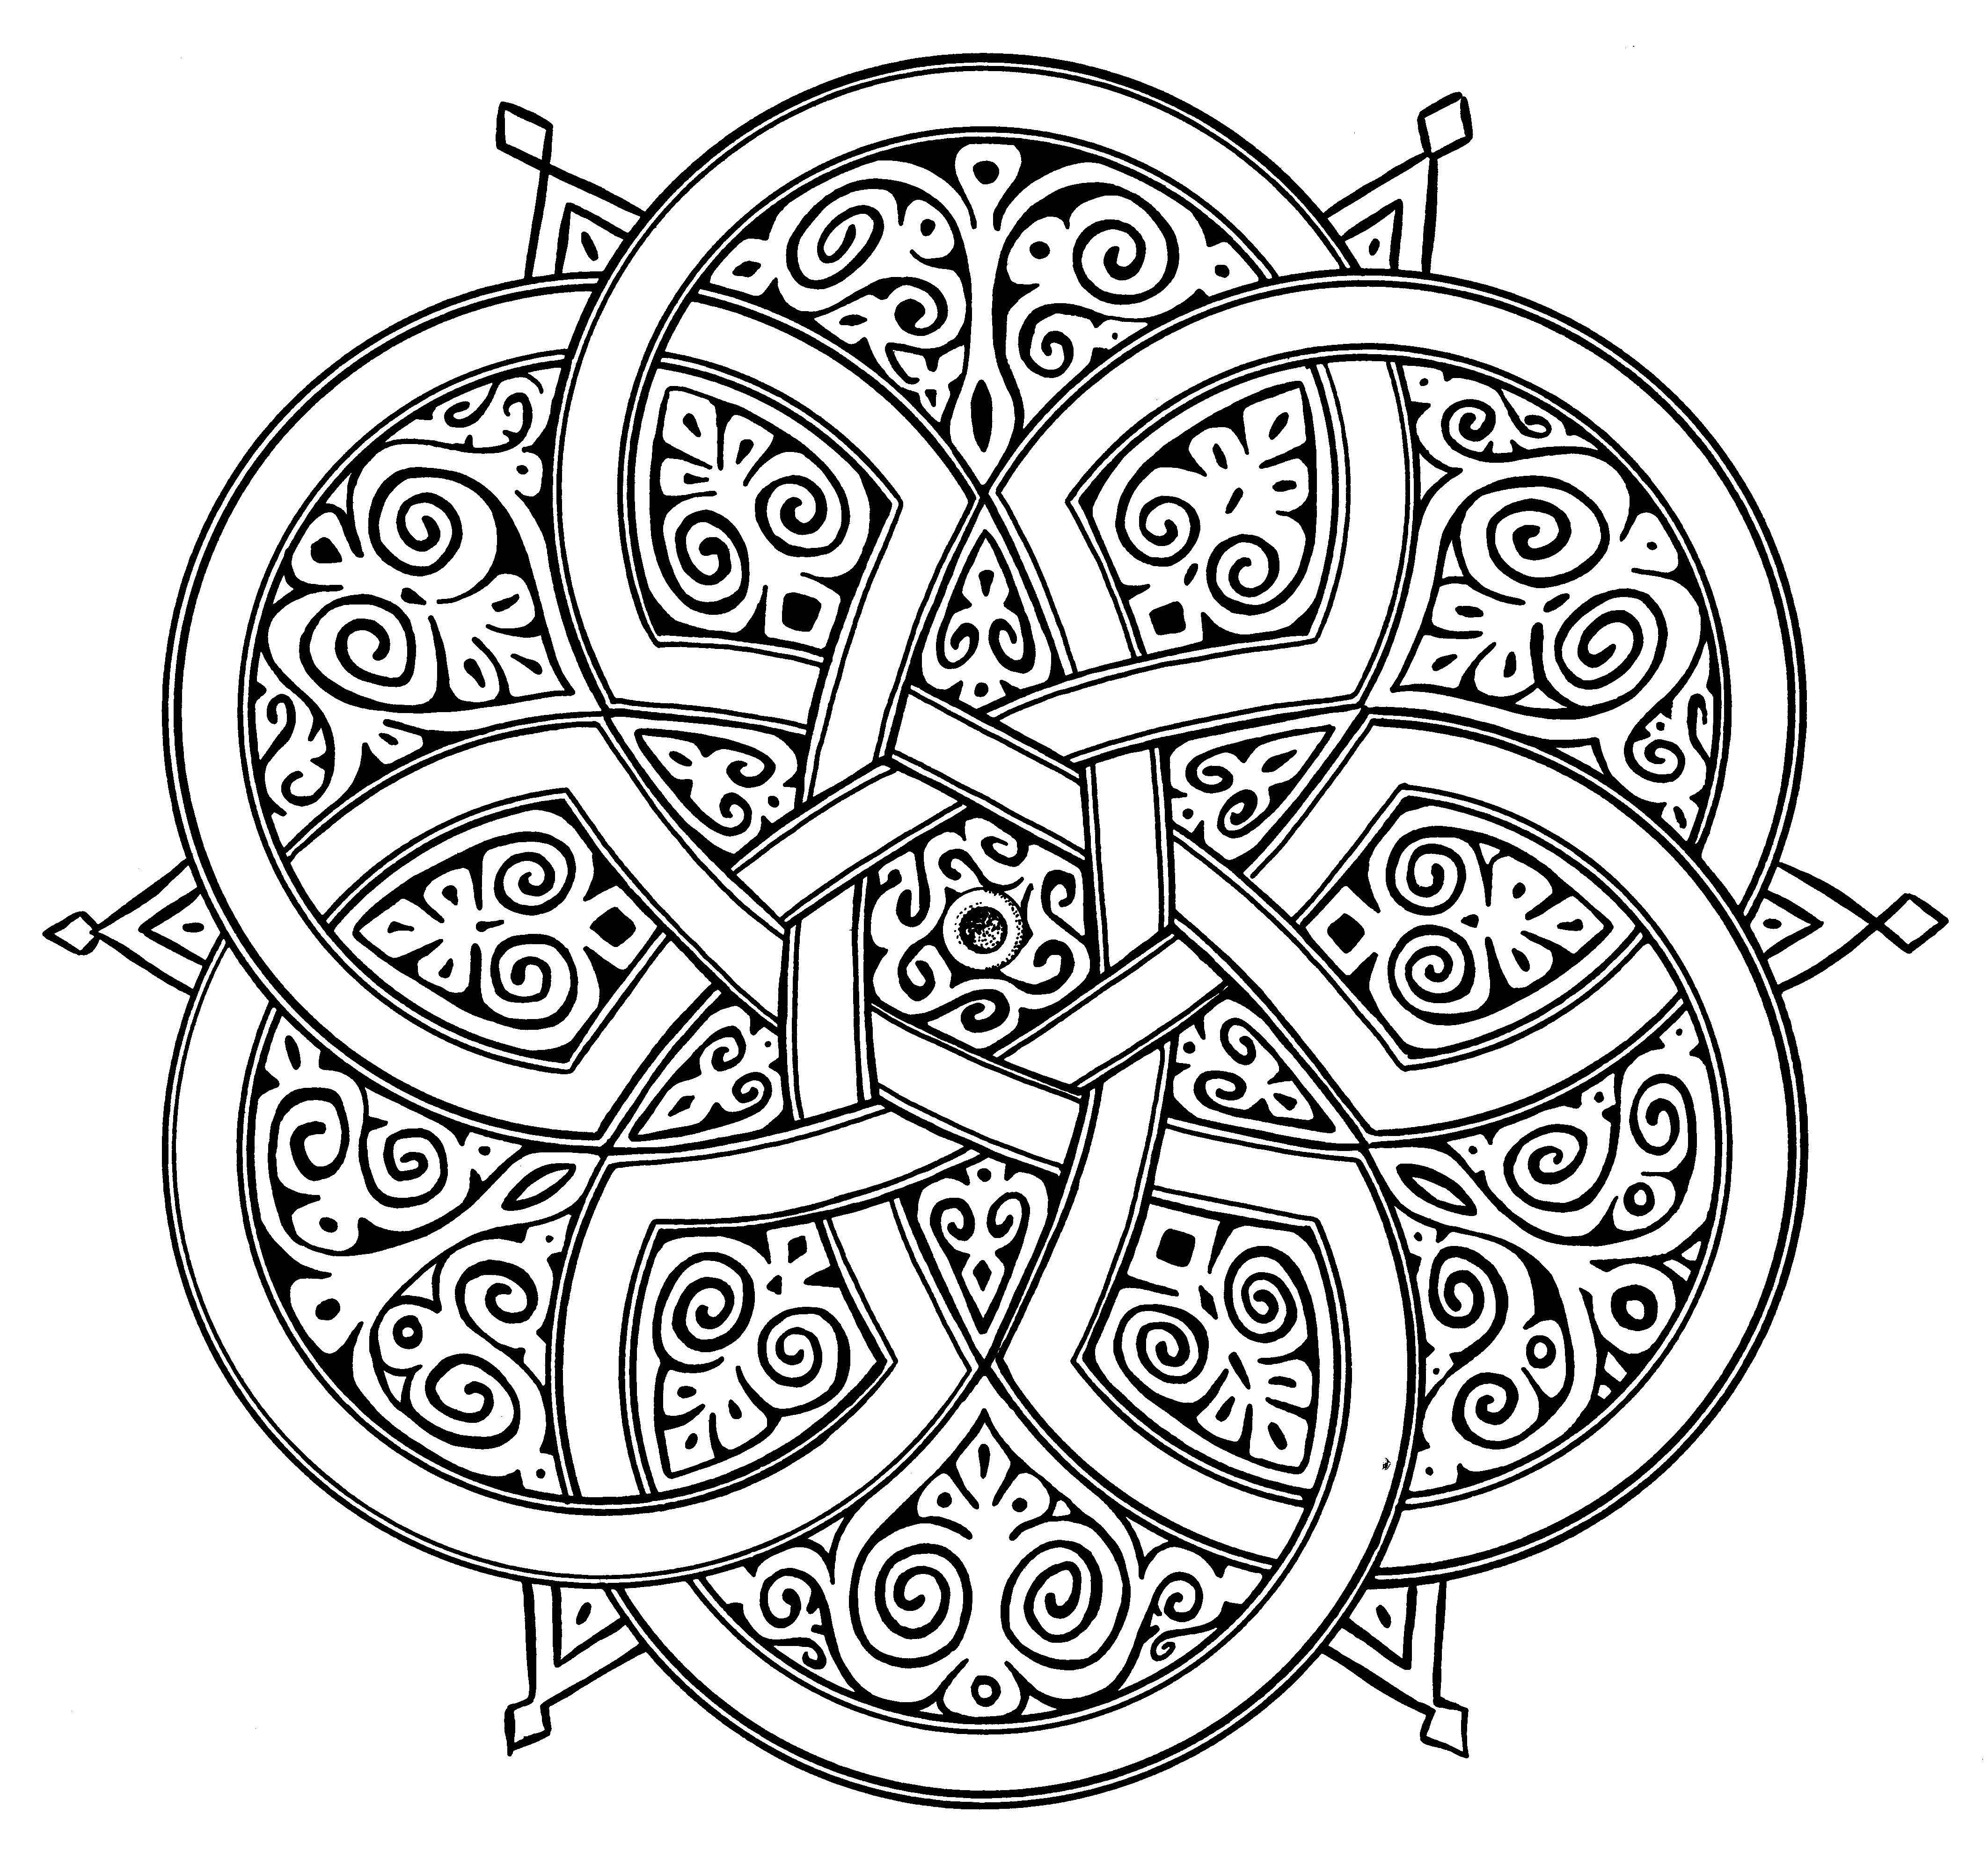 4248x4001 Islamic Art Geometric Designs Sketch Coloring Page Epin Free